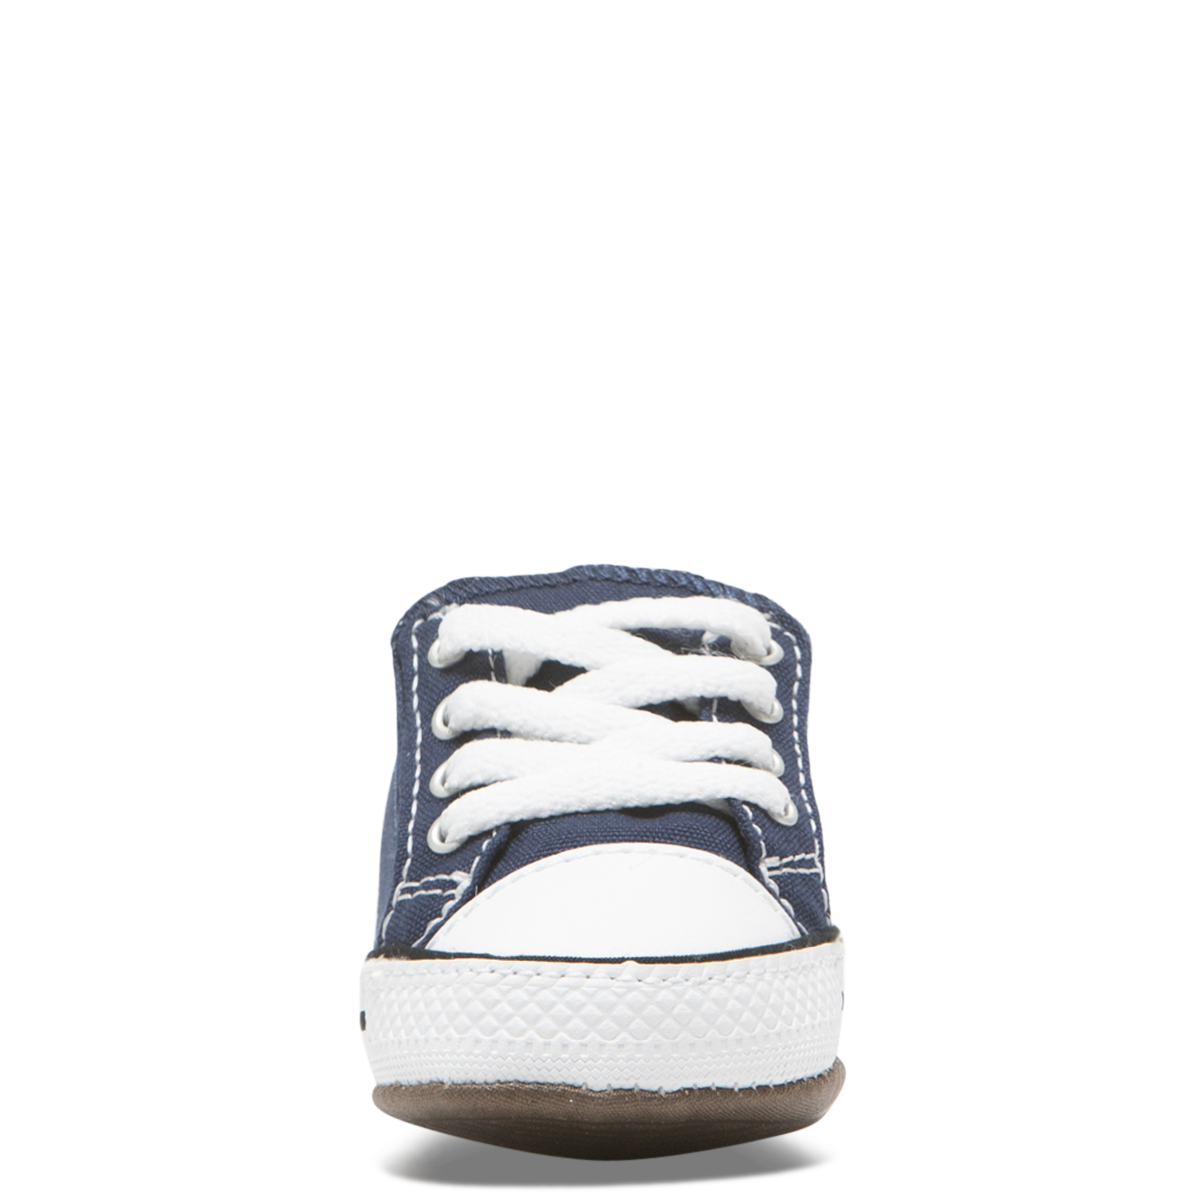 Converse Chuck Taylor All Star Cribster Canvas Colour Mid NavyNatural IvoryWhite